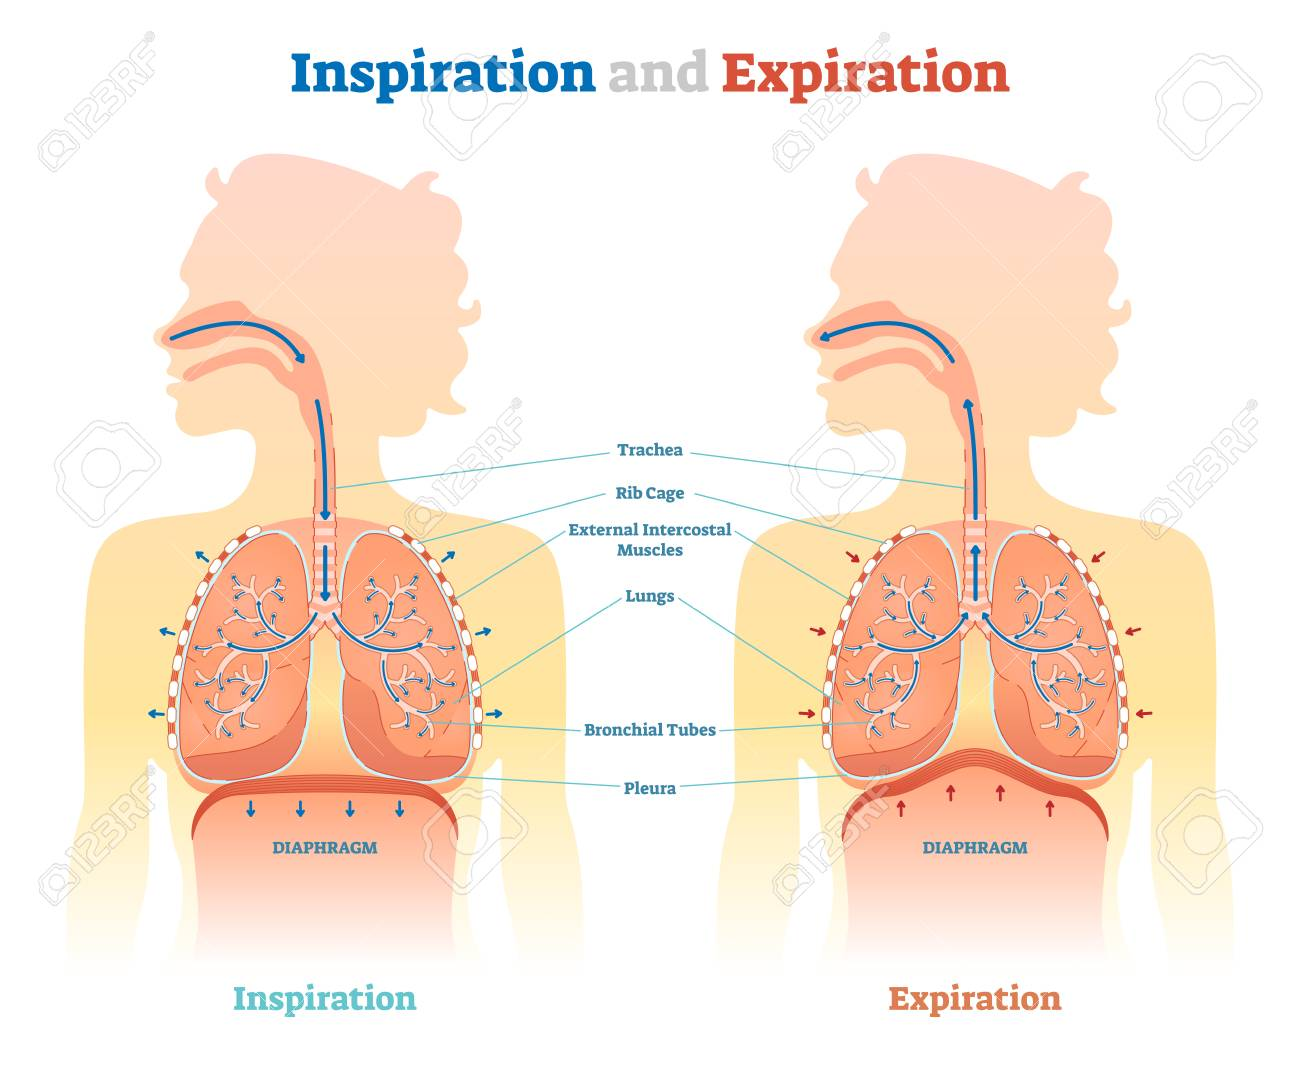 Inspiration and Expiration anatomical vector illustration diagram, educational medical scheme with lungs, diaphragm, rib cage and trachea. - 95617364